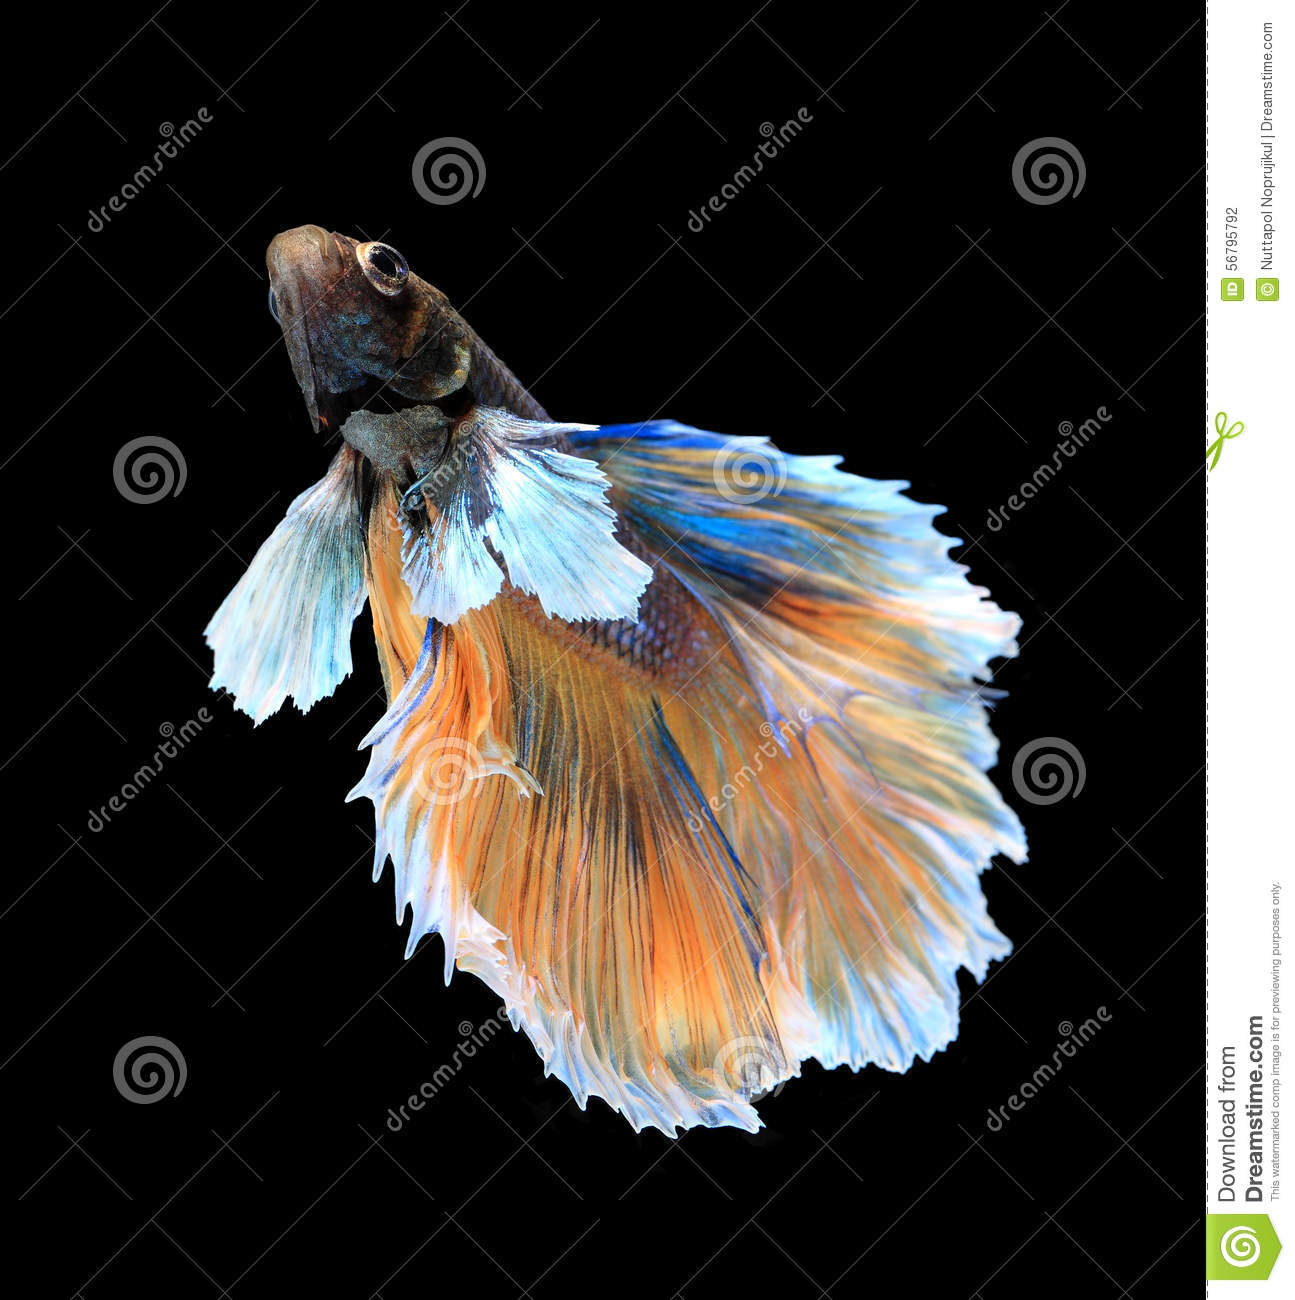 White and gold or blue and black dress royalty free stock for Siamese fighting fish crossword